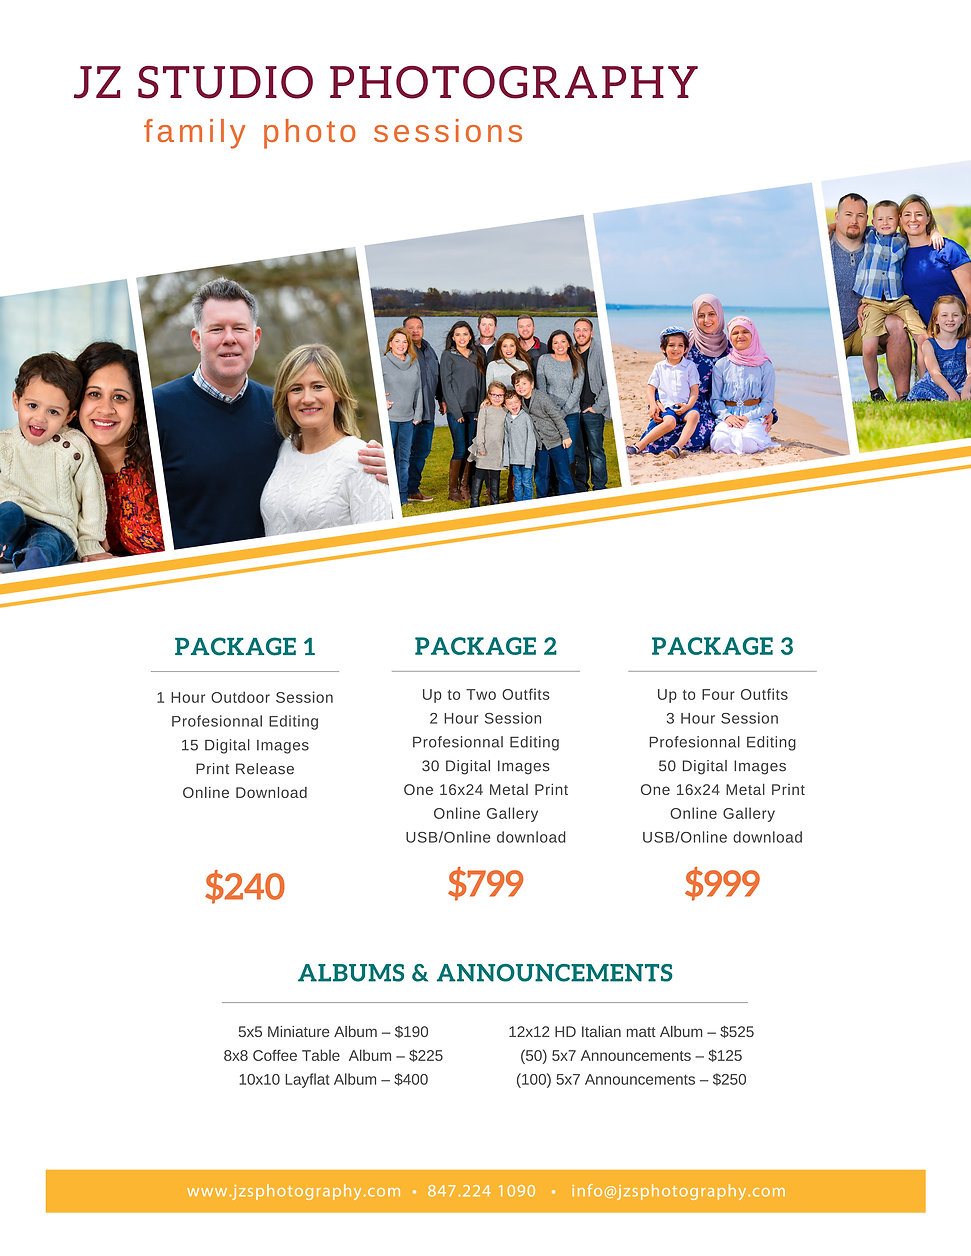 JZ STUDIO PHOTOGRAPHY FAMILY PACKAGES co